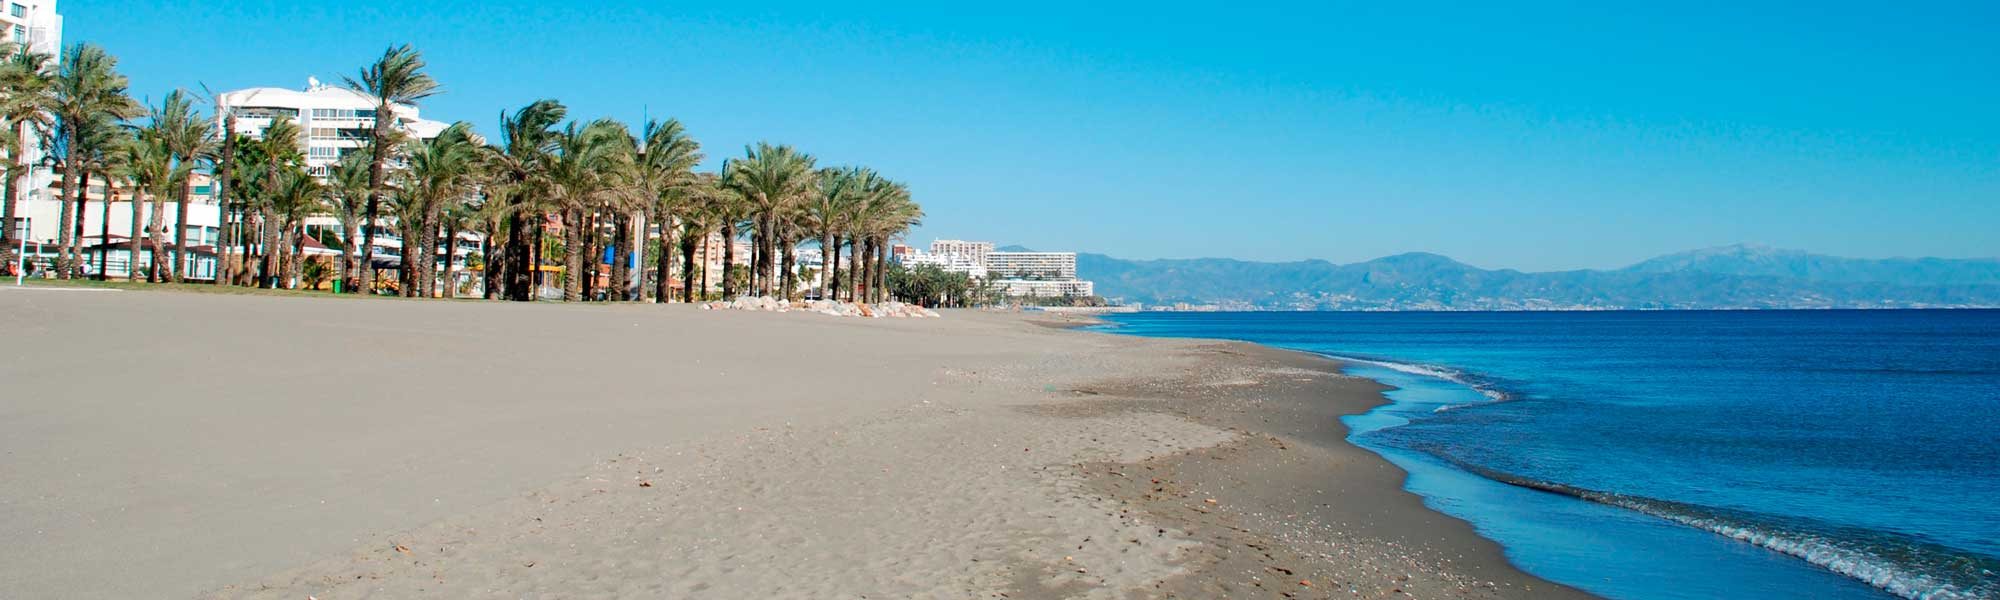 Torremolinos Hotels background